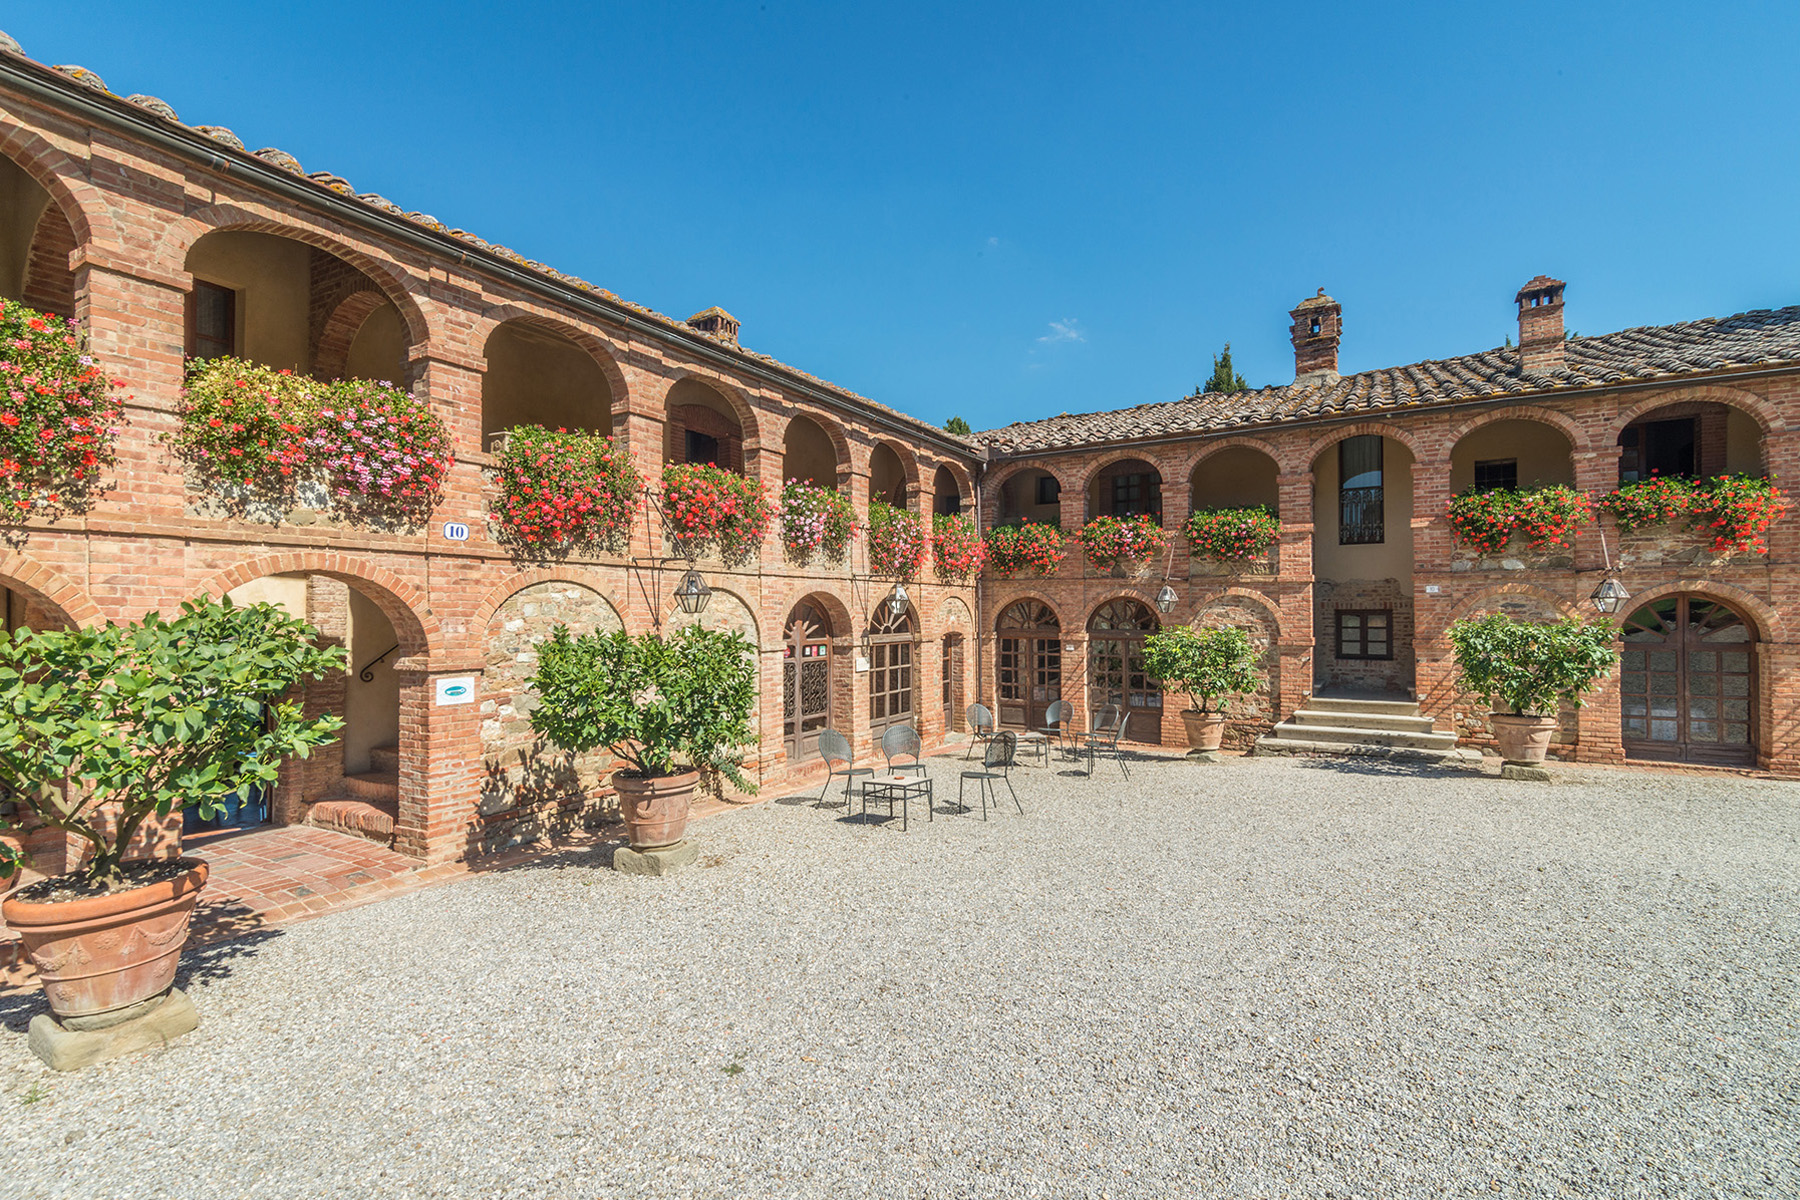 Additional photo for property listing at Amazing Boutique Hotel near Siena Sinalunga Sinalunga, Siena 53100 Italien